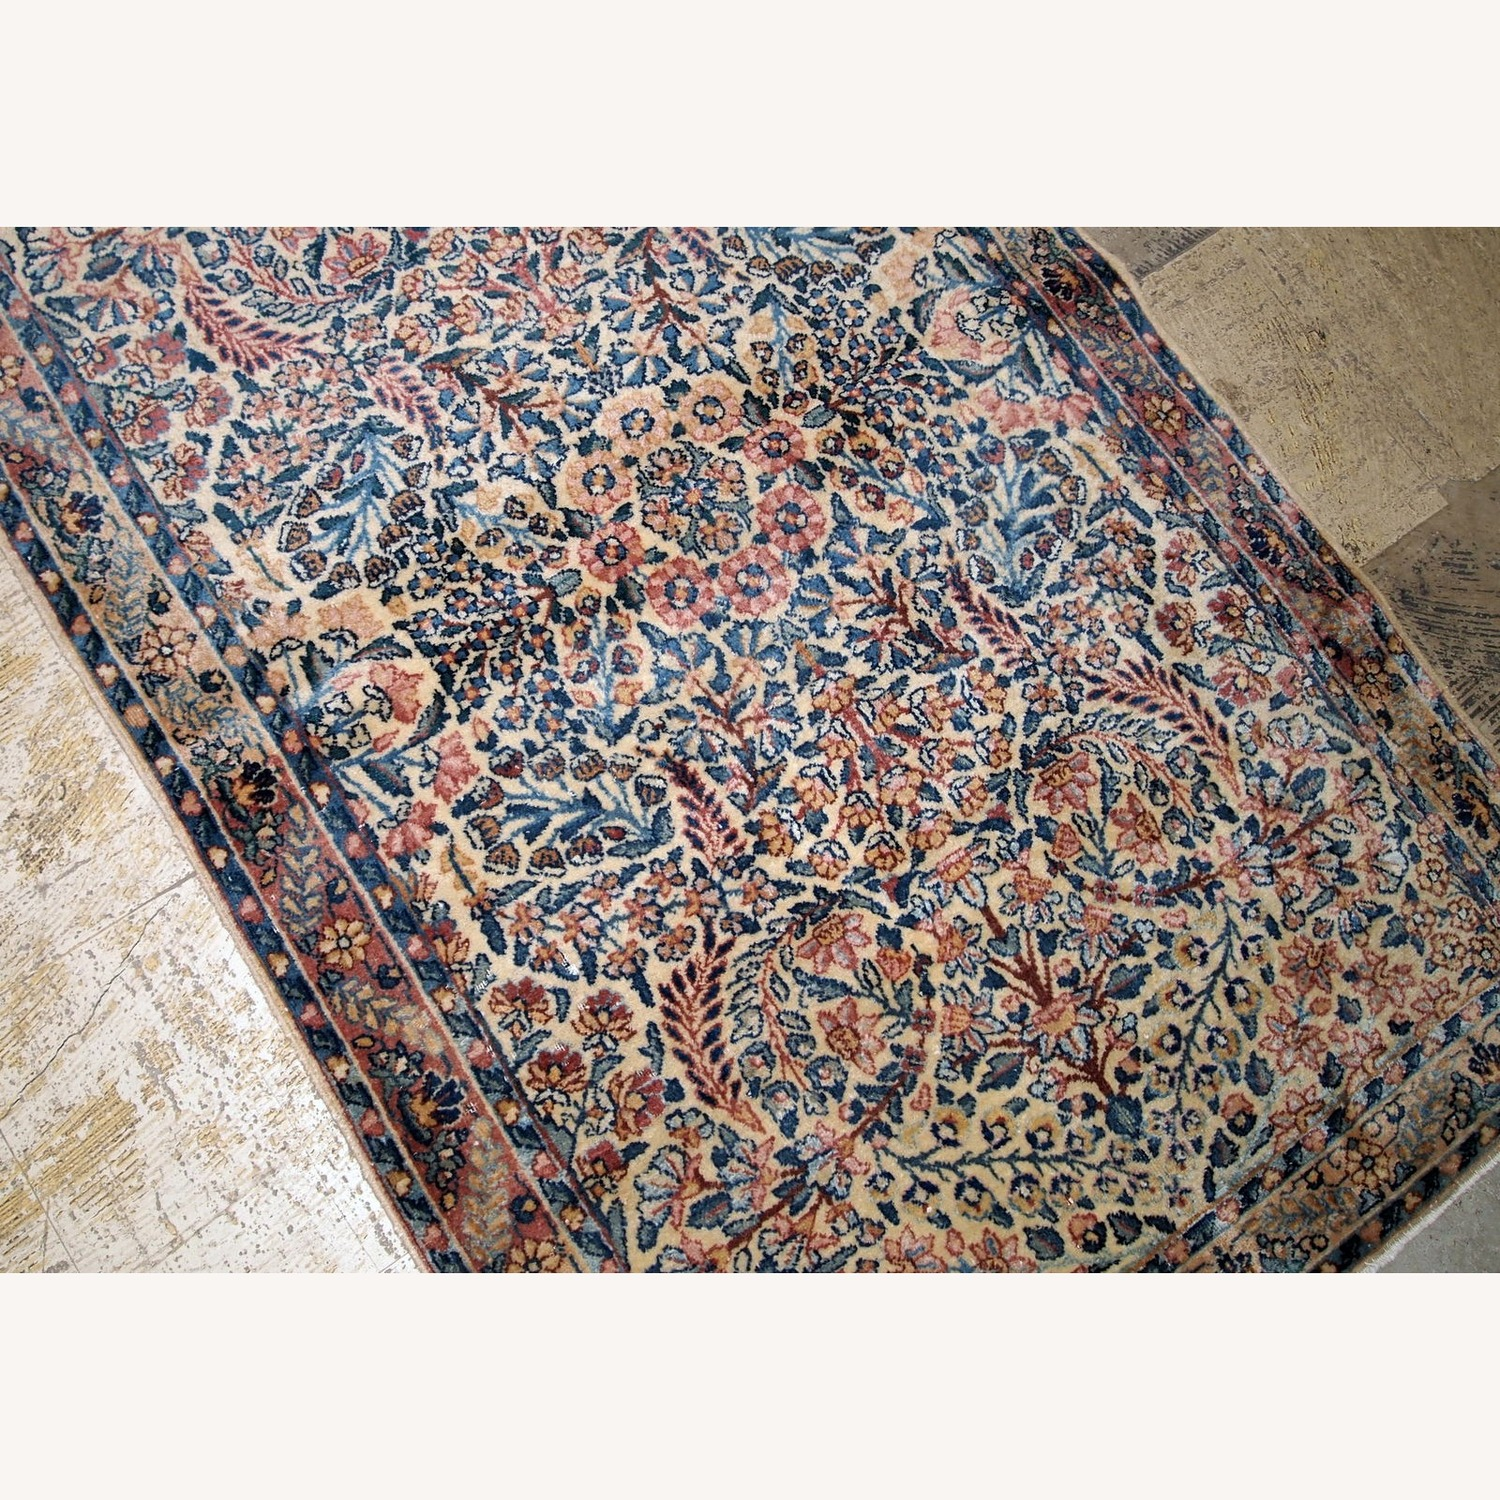 Handmade Antique Persian Kerman Rug - image-6